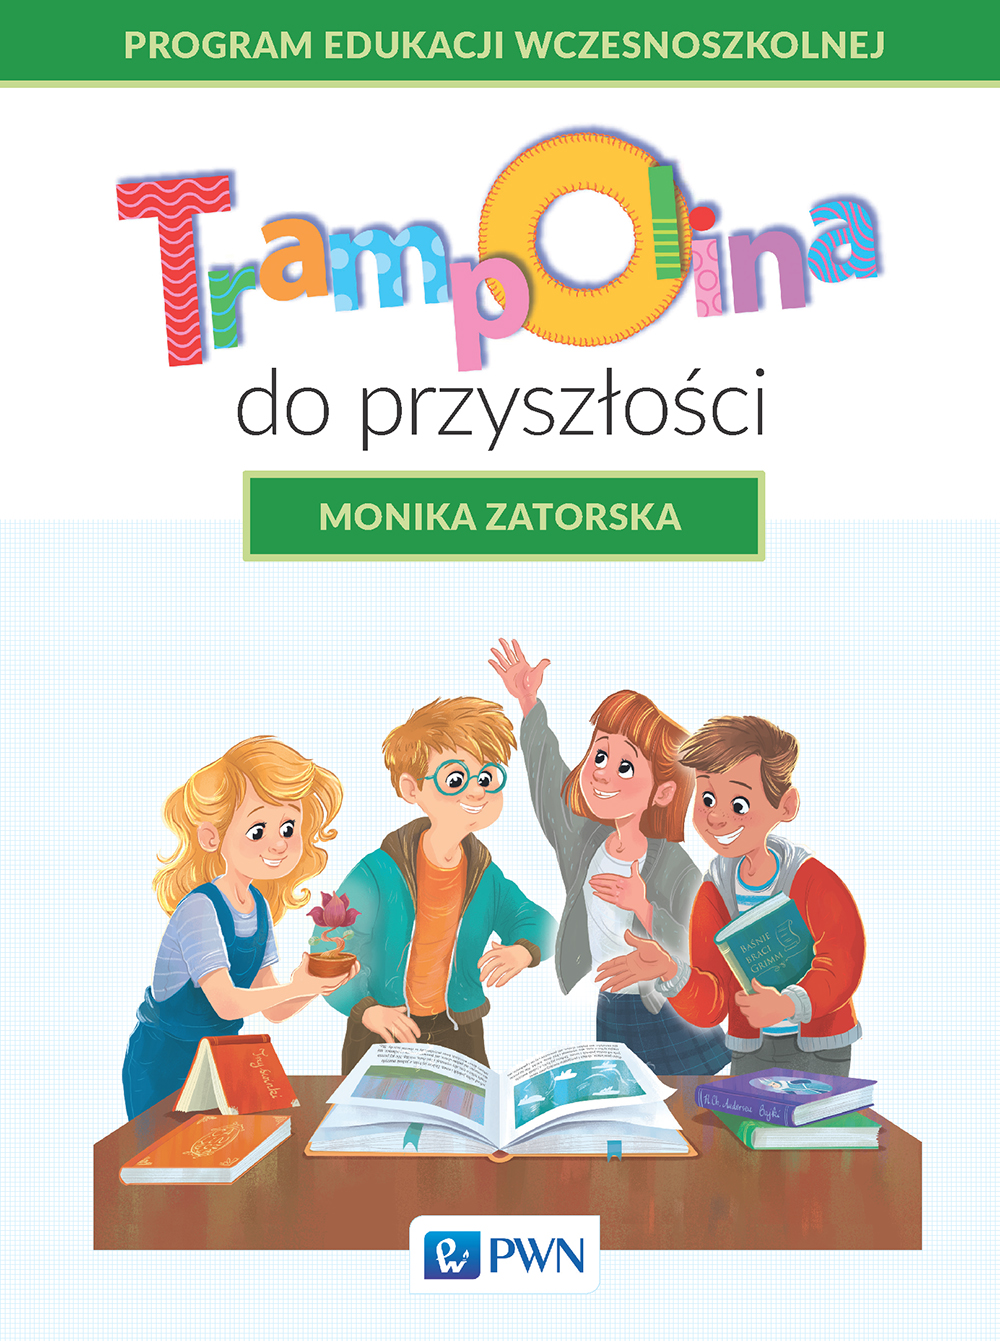 Trampolina_do_przyszlosci_program_okladka.jpg